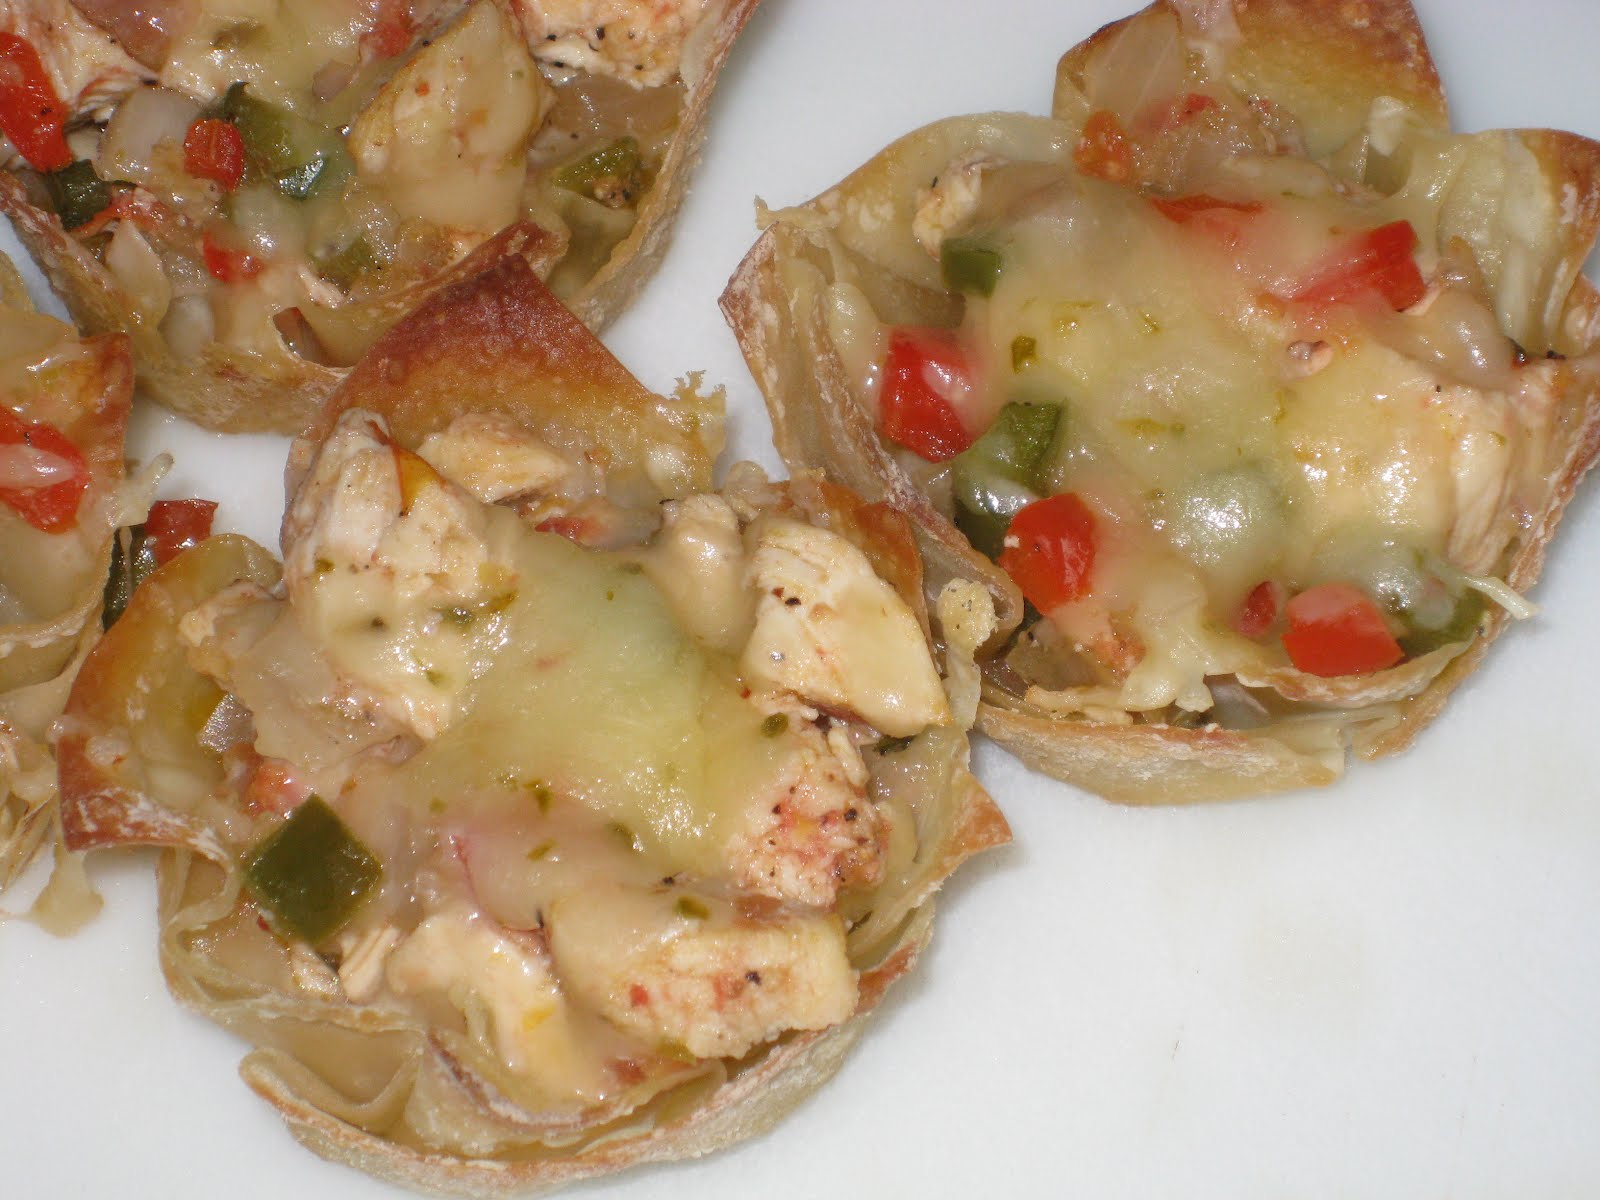 Bonz Blogz: Spicy Chicken and Pepper Jack Wontons